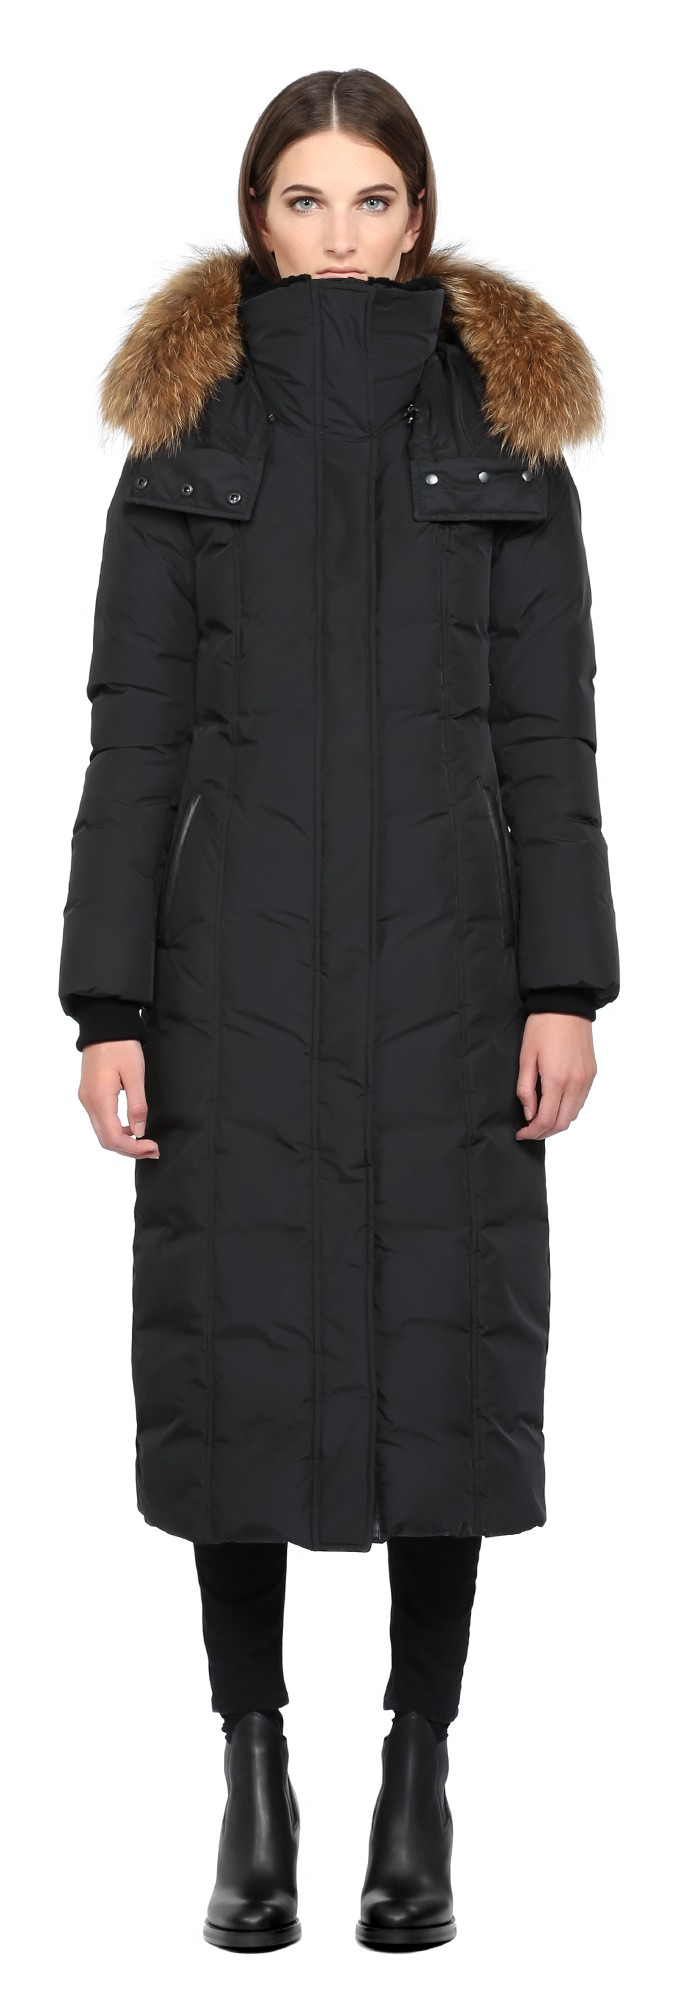 Black Long Down Coat With Fur Hood Mackage Women